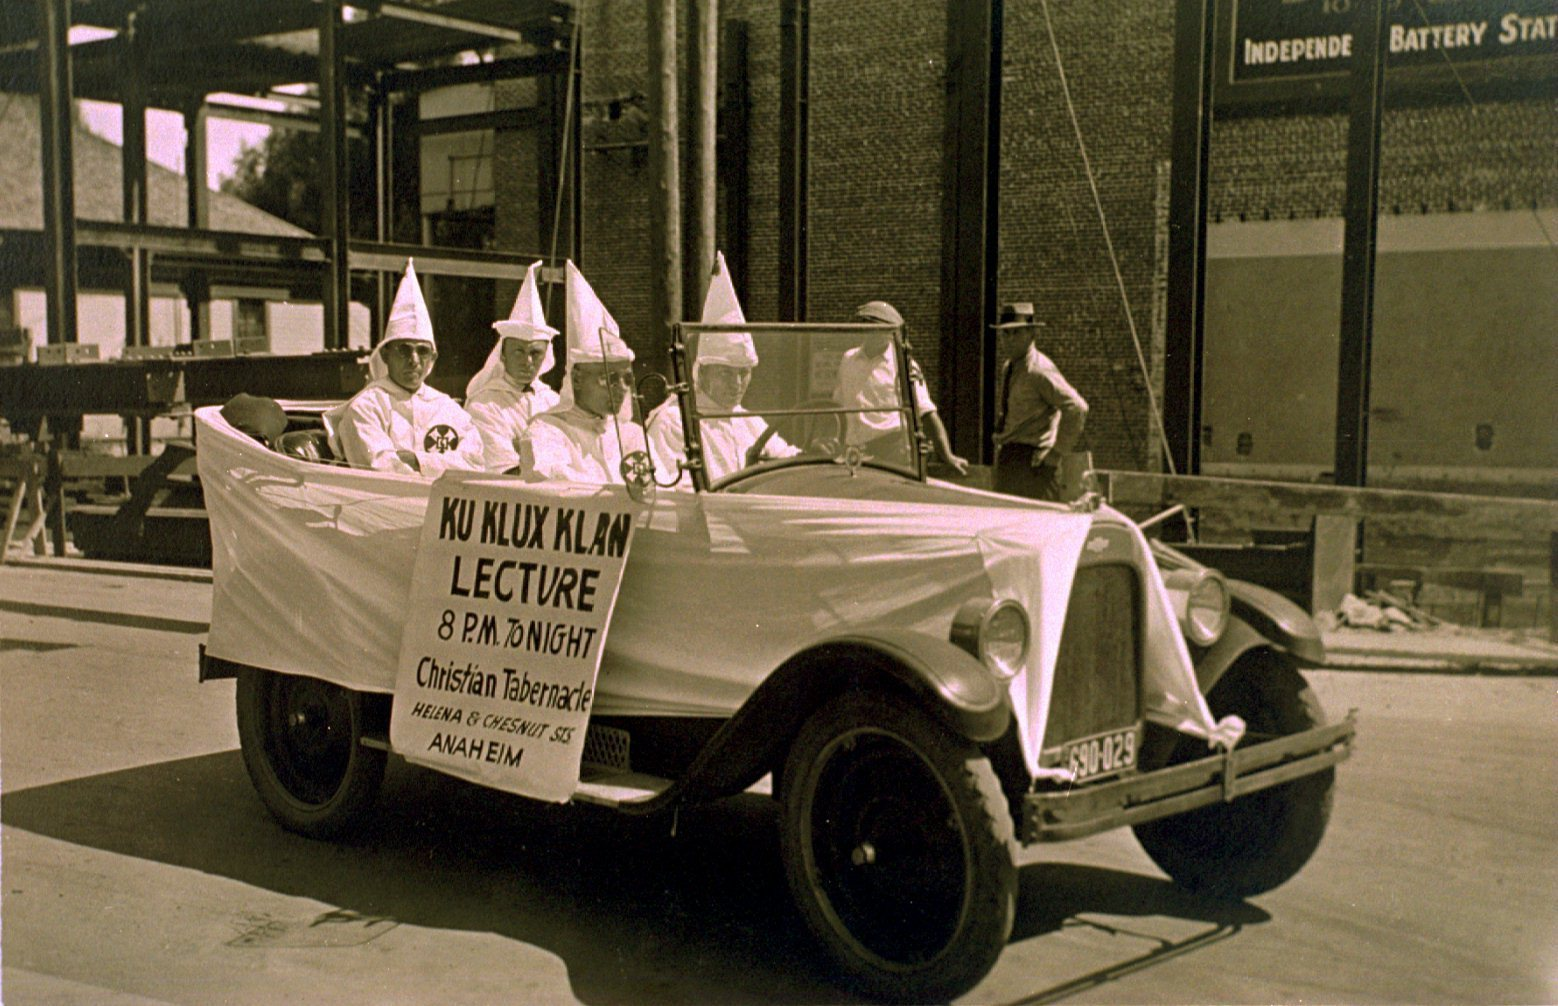 ku klux klan a history of violence and manipulation Ku klux klan (kkk) is the name of several past and present organizations  in other violence, klansmen killed more than 150 african americans in a  in keeping with its origins in the leo frank lynching, the reorganized klan  and hugo black manipulated the kkk membership against the power of the.